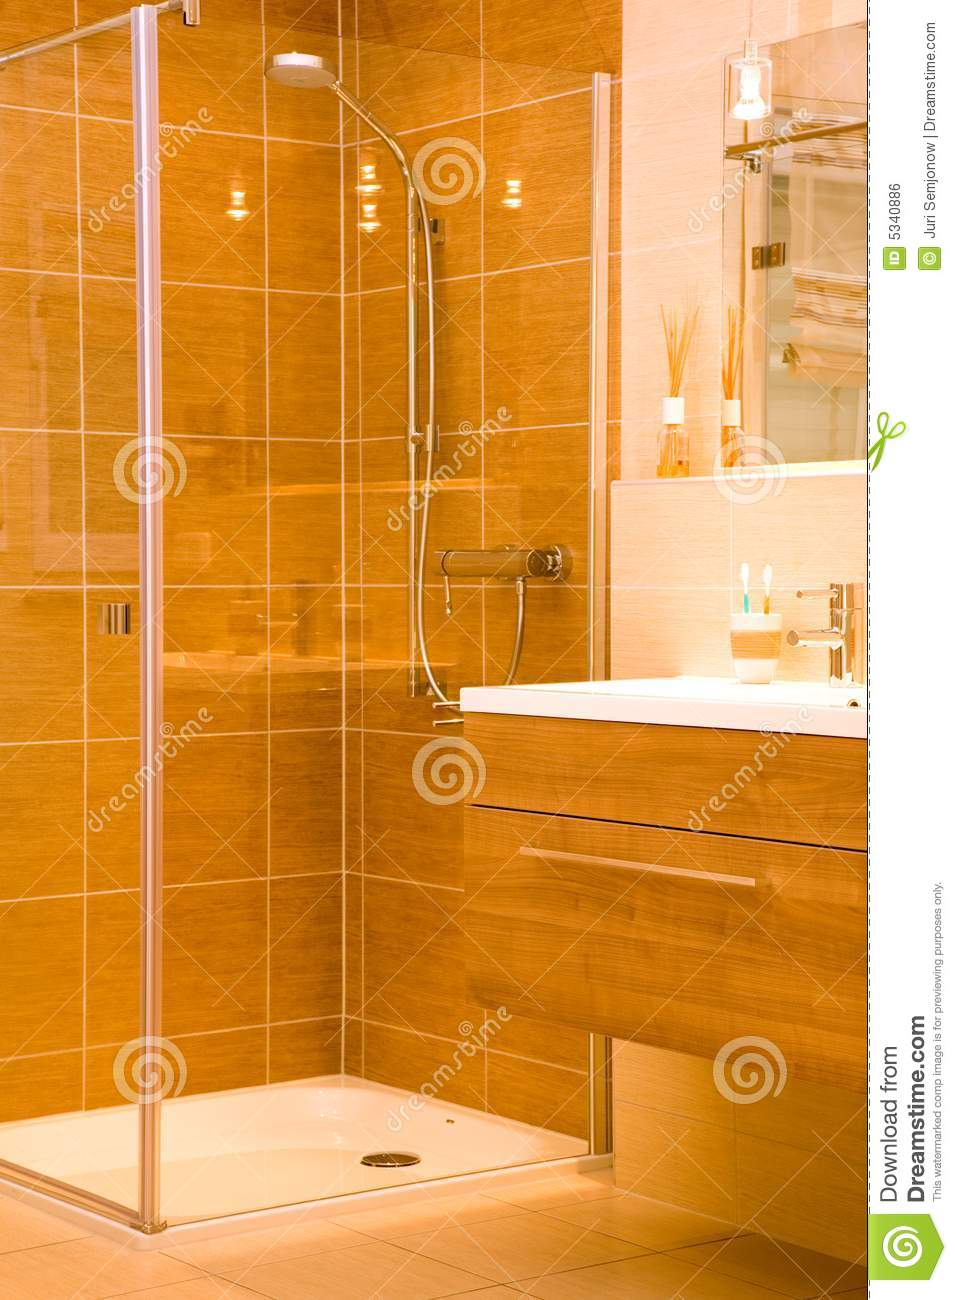 Douche moderne de salle de bains photo stock image 5340886 for Photos de douche moderne